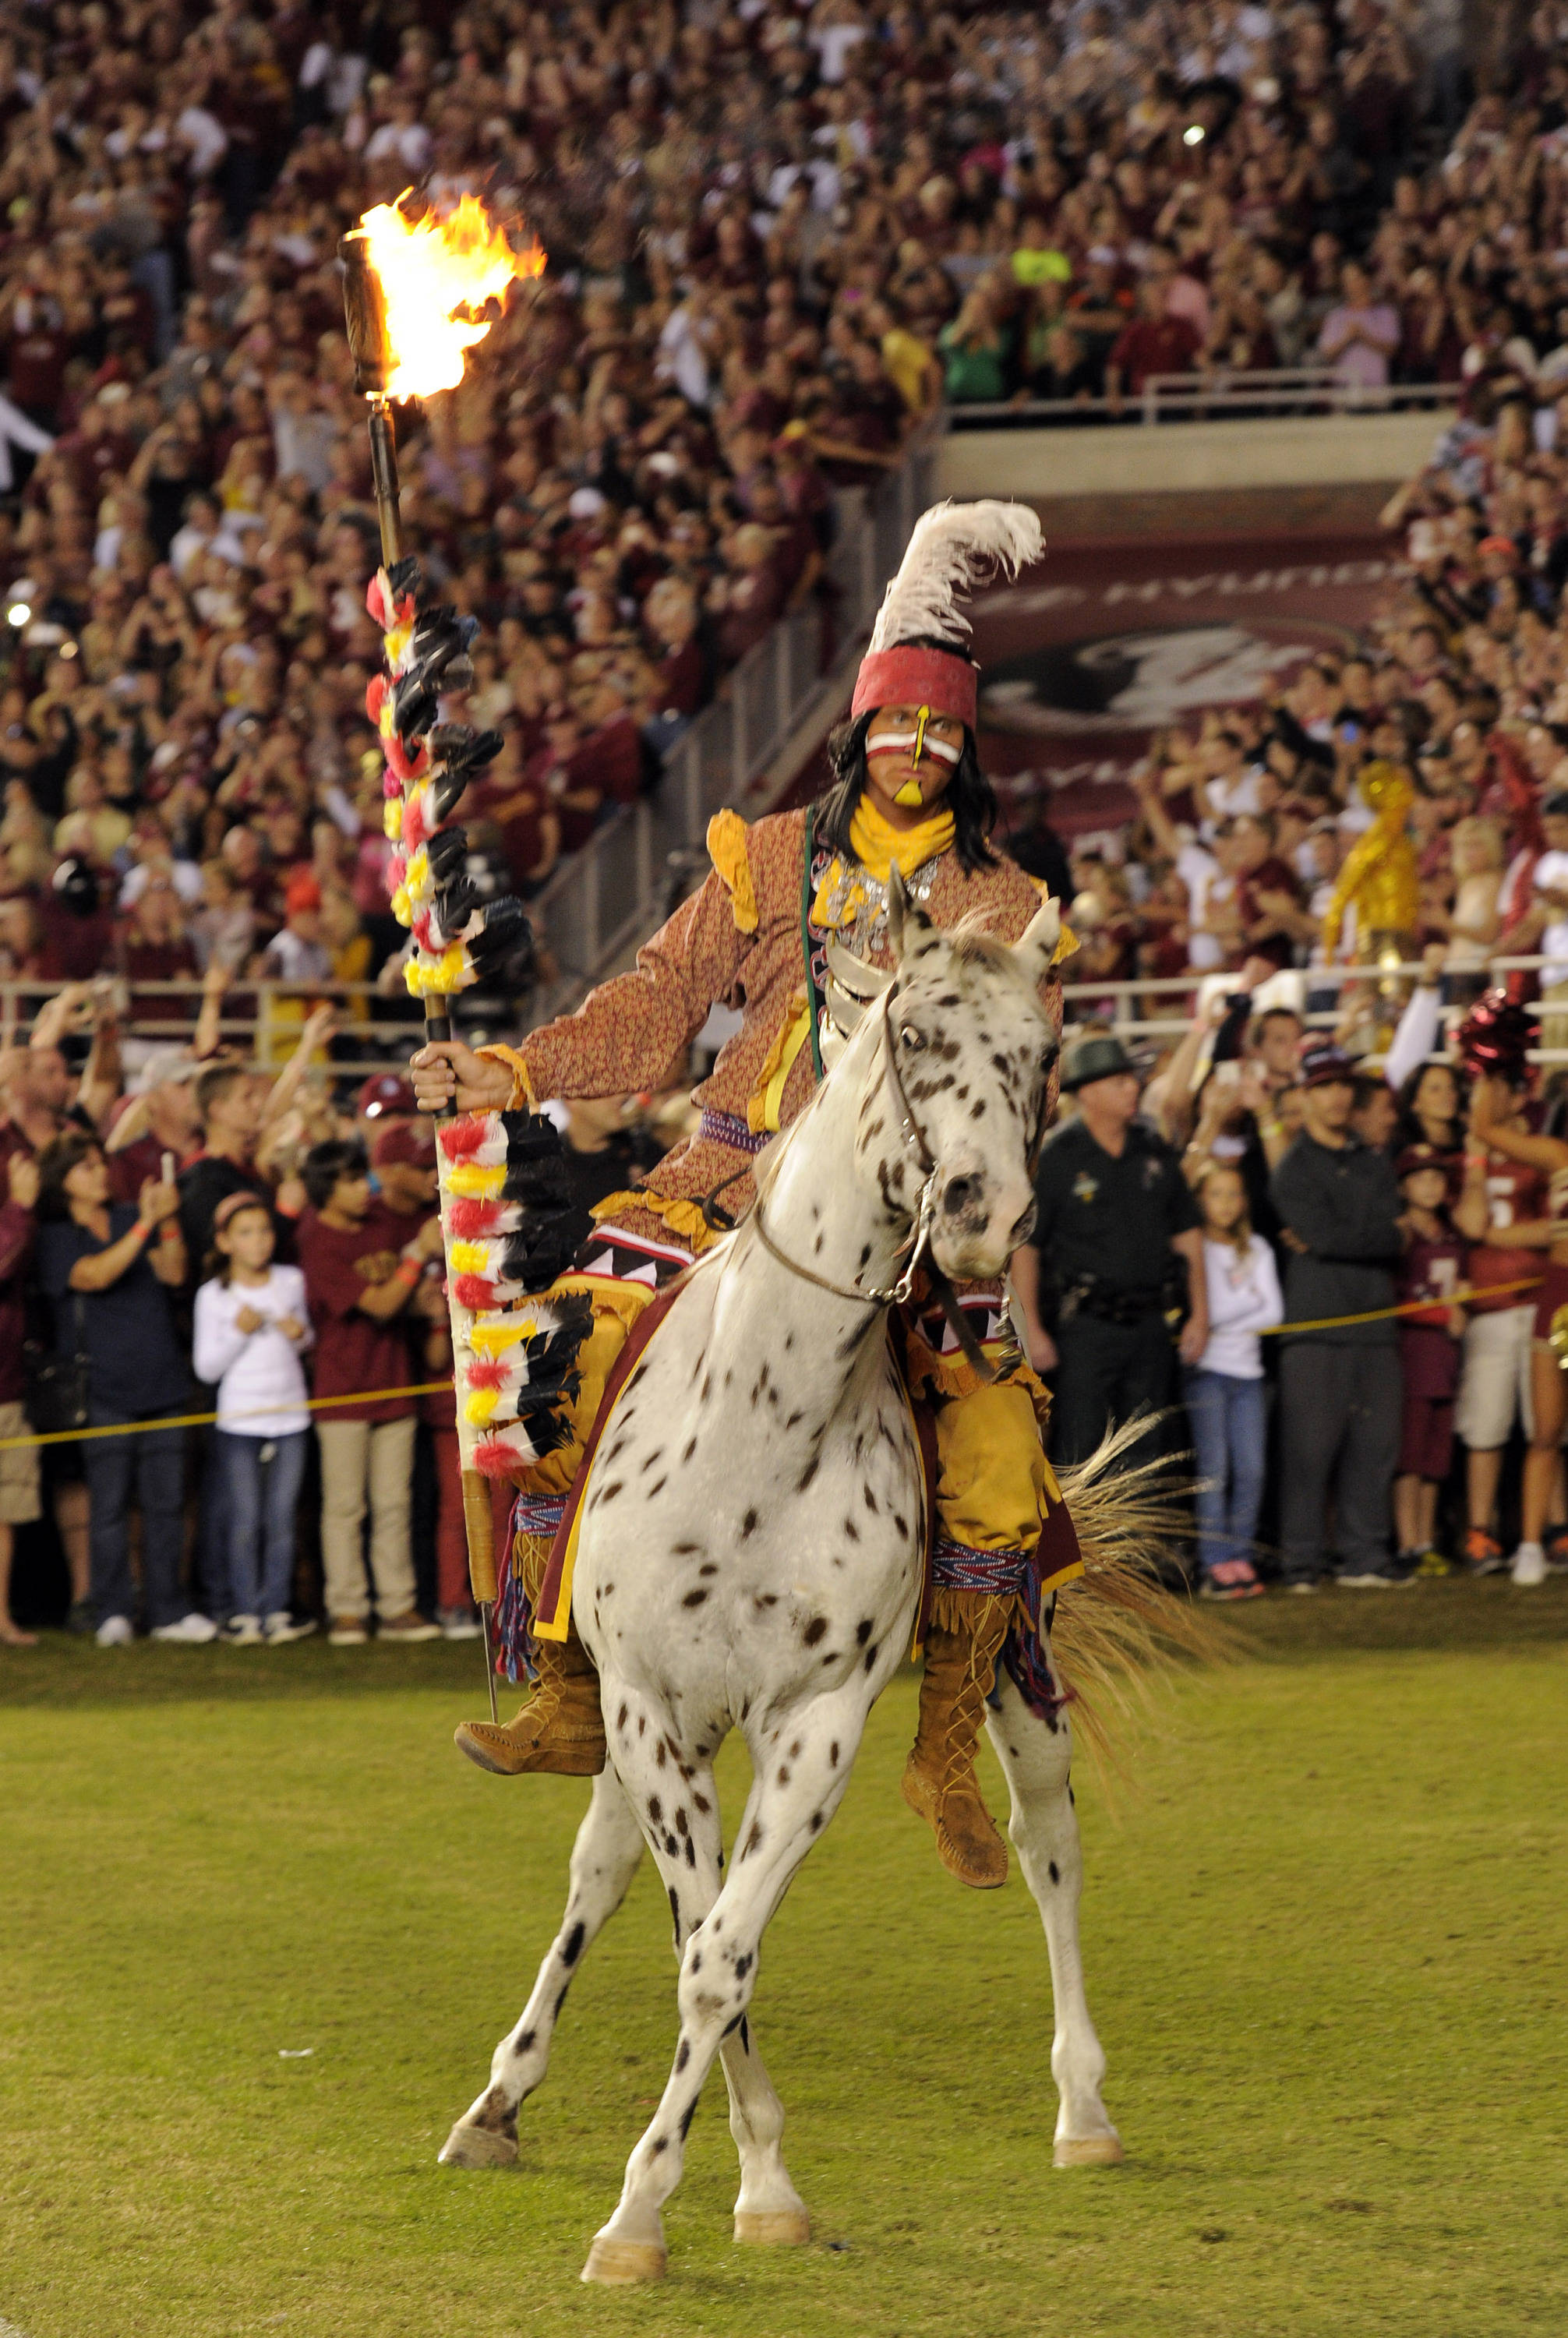 Florida State Seminoles mascot Chief Osceola carries the flaming spear  before the start of their game against the Miami Hurricanes at Doak Campbell Stadium. Mandatory Credit: John David Mercer-USA TODAY Sports